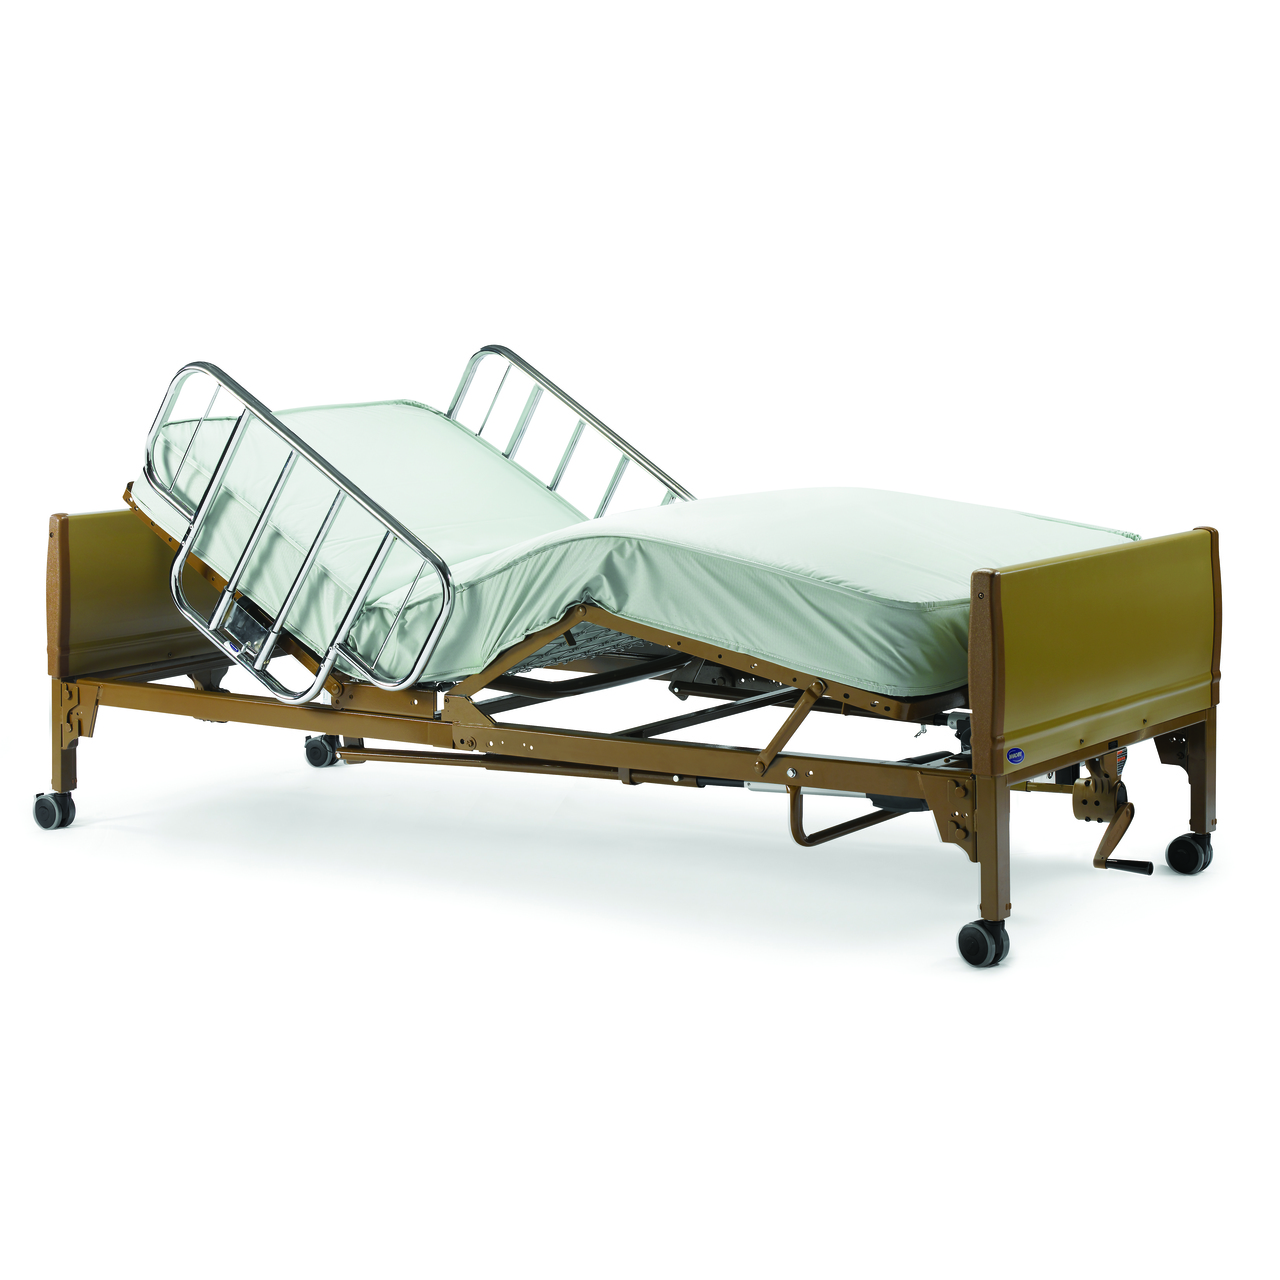 Twin Size Electric Hospital Bed With Matress